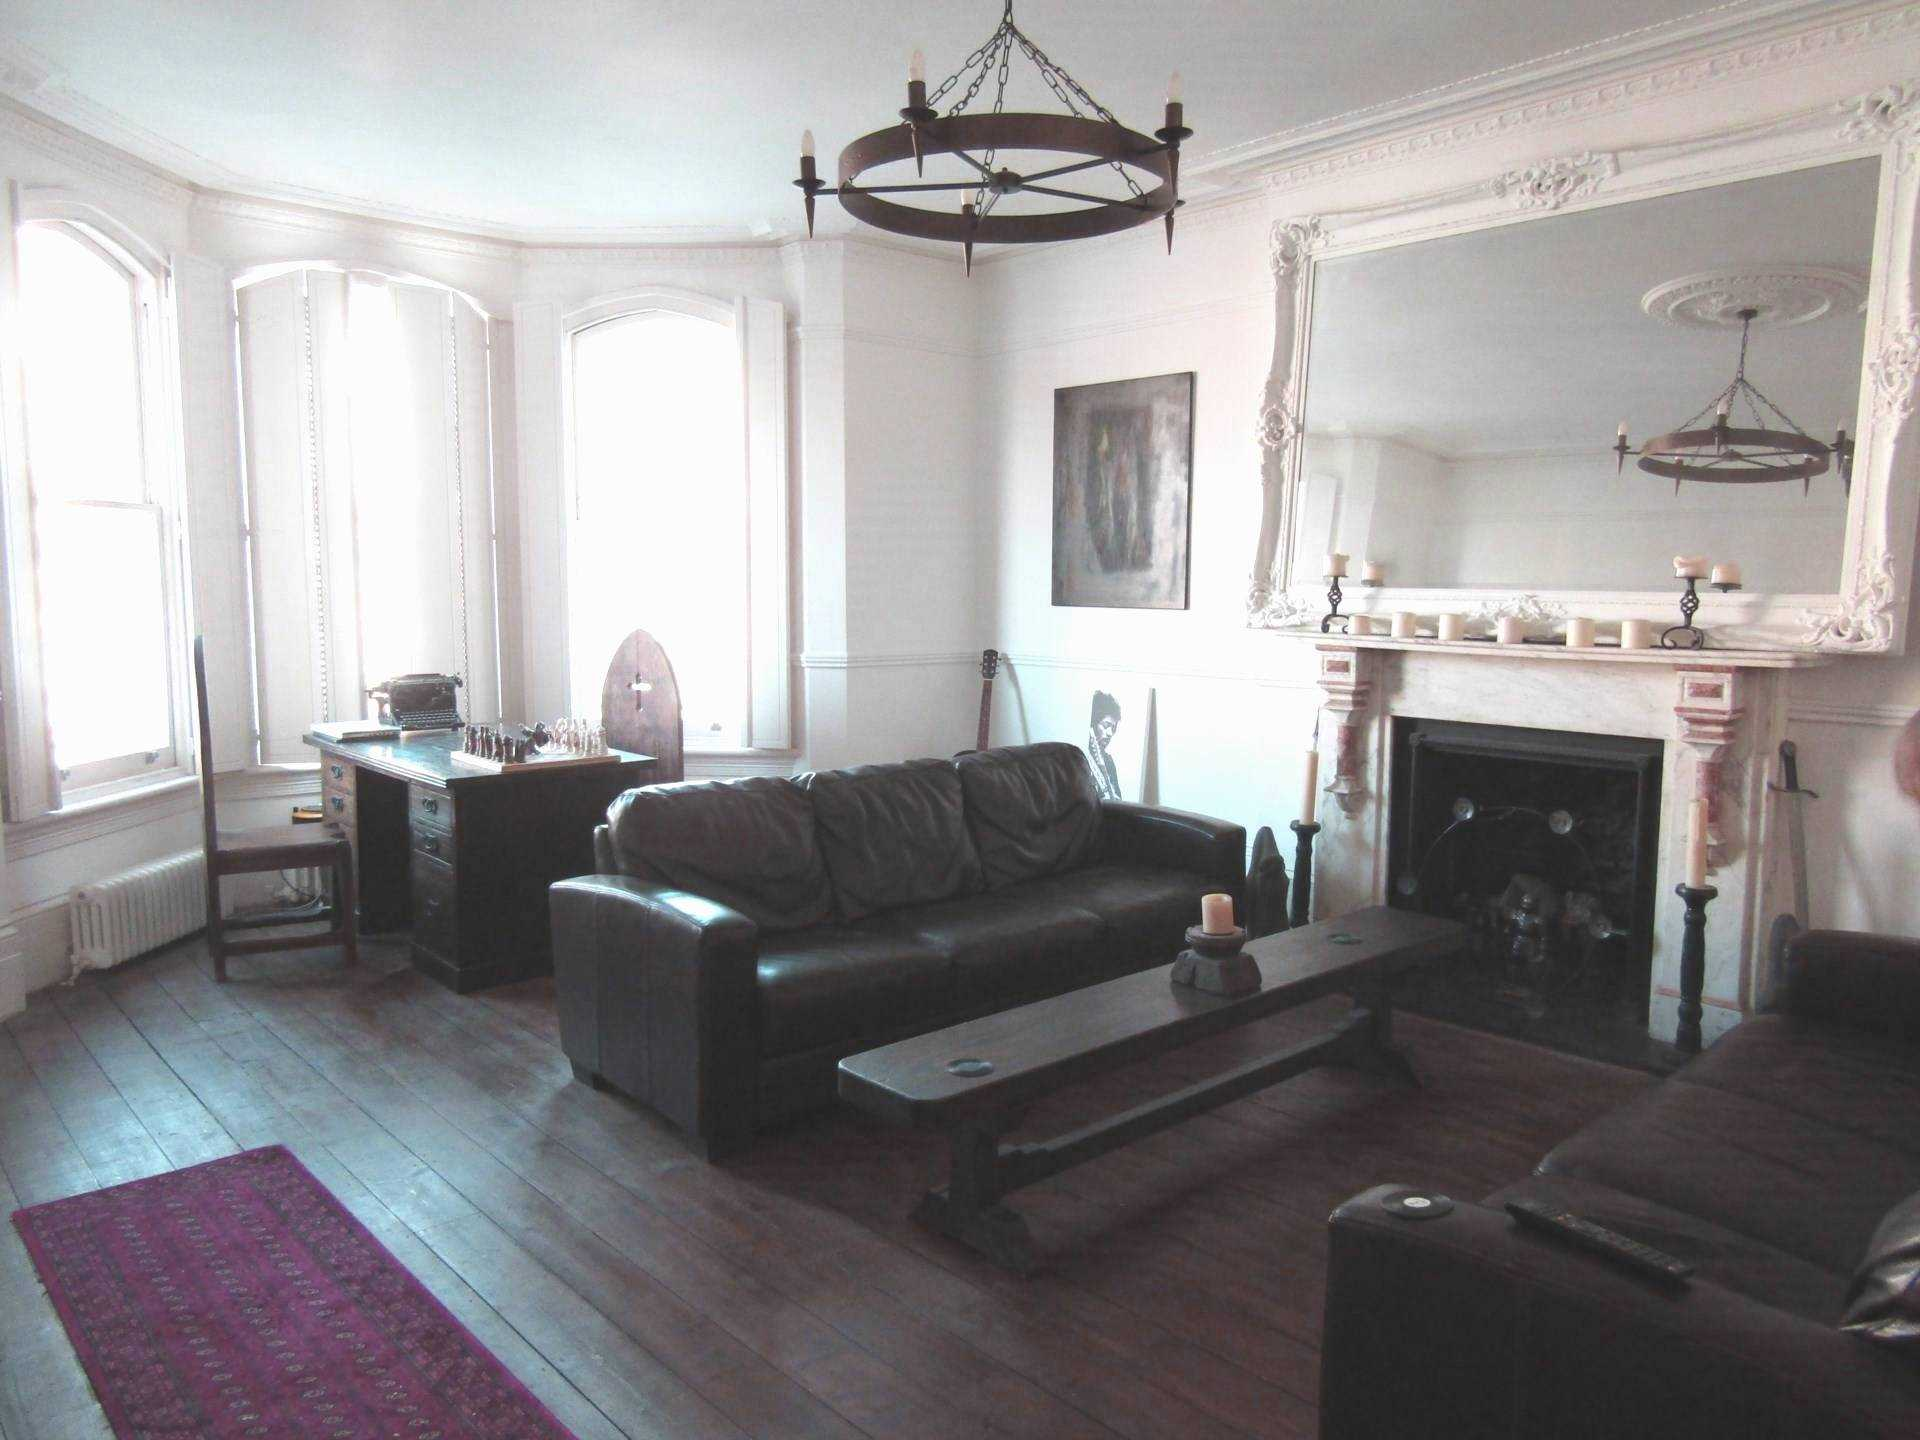 3 bed Flat for rent in Hove. From Westbeach Properties Ltd